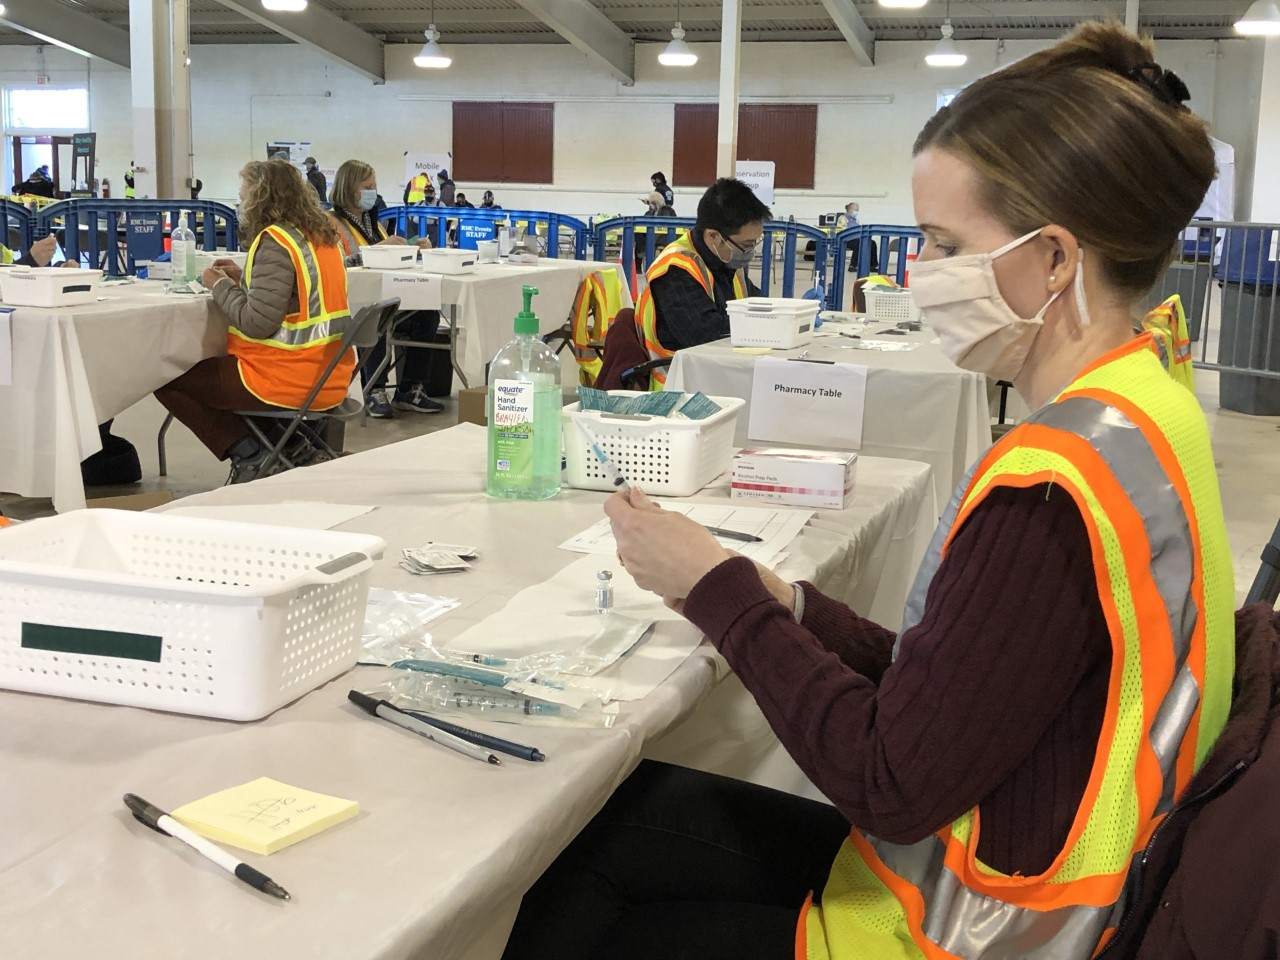 Over 4 million vaccines administered in Virginia: Here are the volunteers making it happen